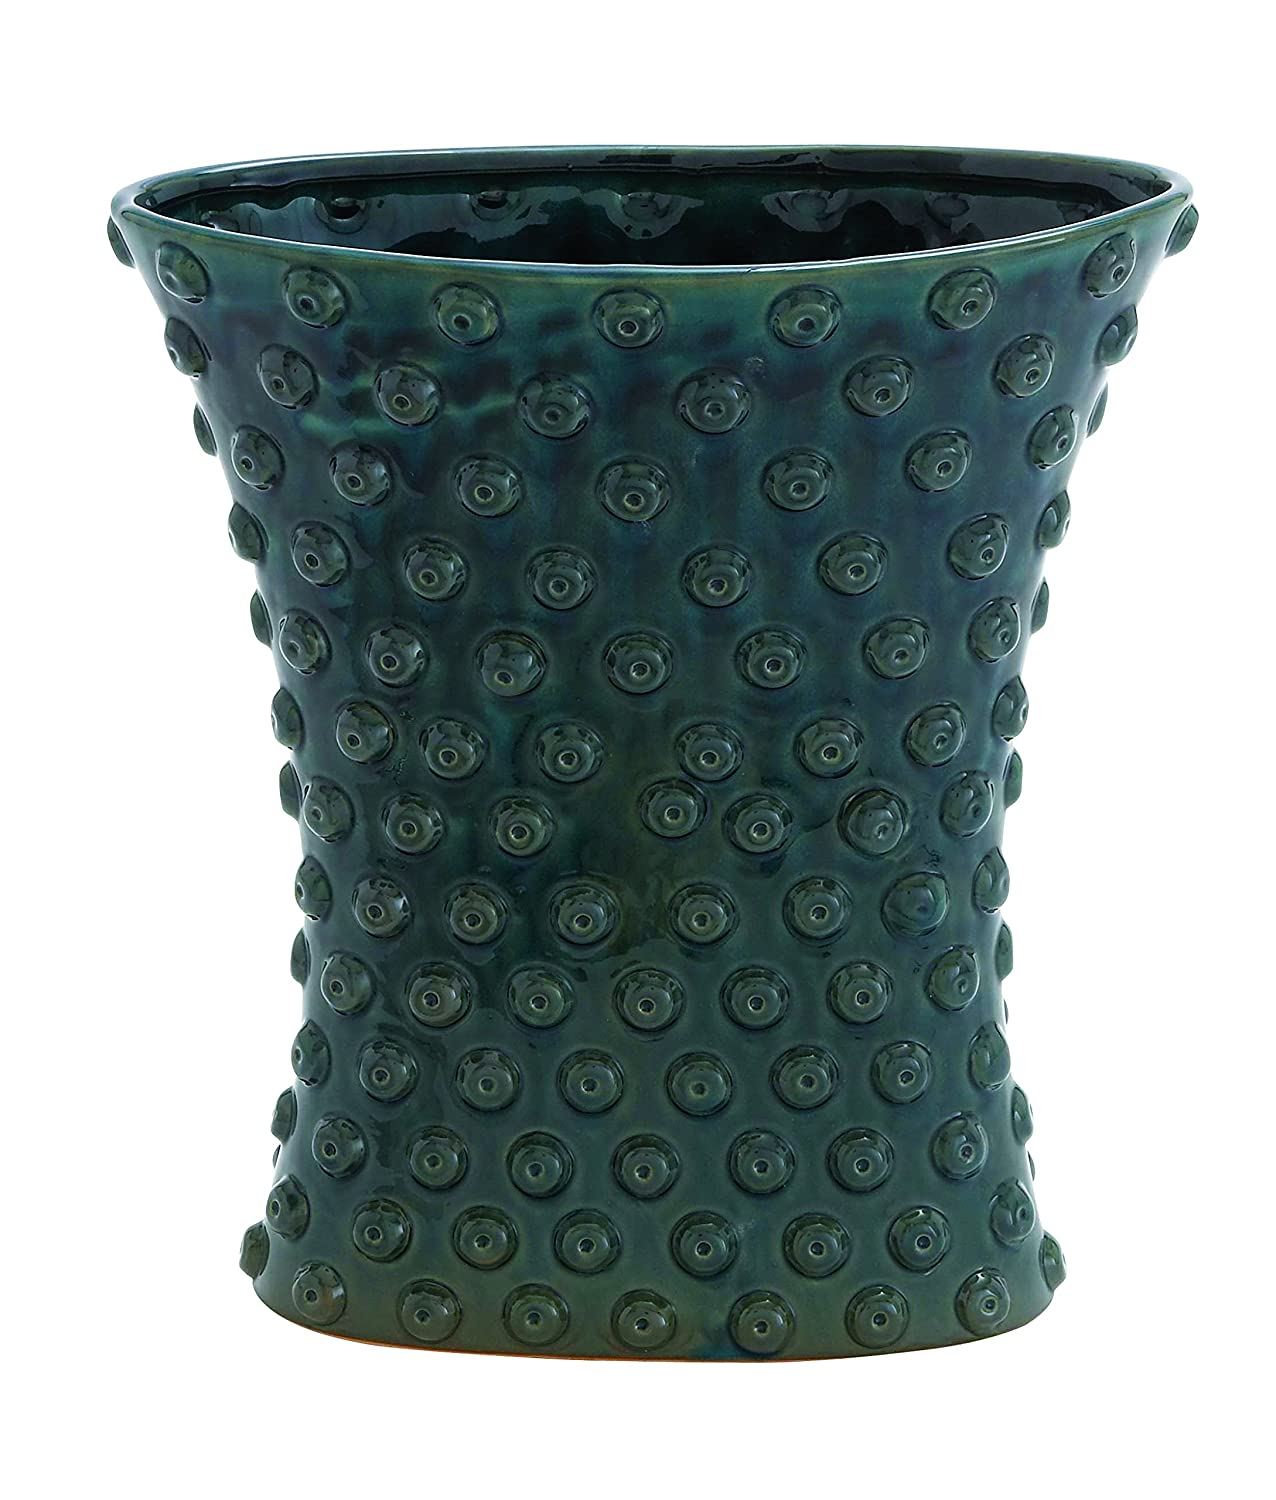 Plutus Brands Weather Resistant Ceramic Crackled Vase with Easy to Use Facility UE7295